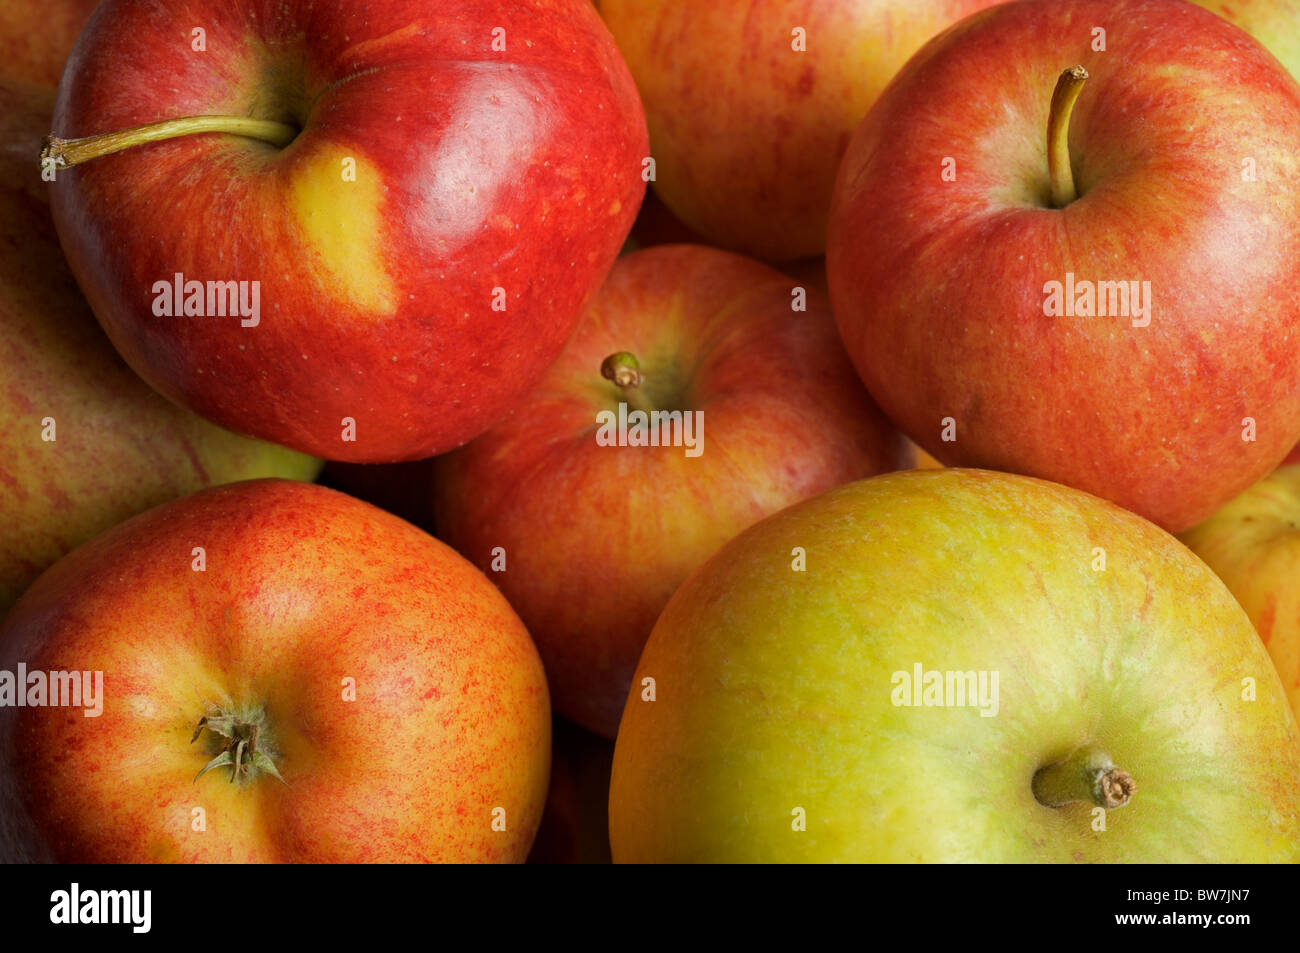 Selection of English apples - Stock Image